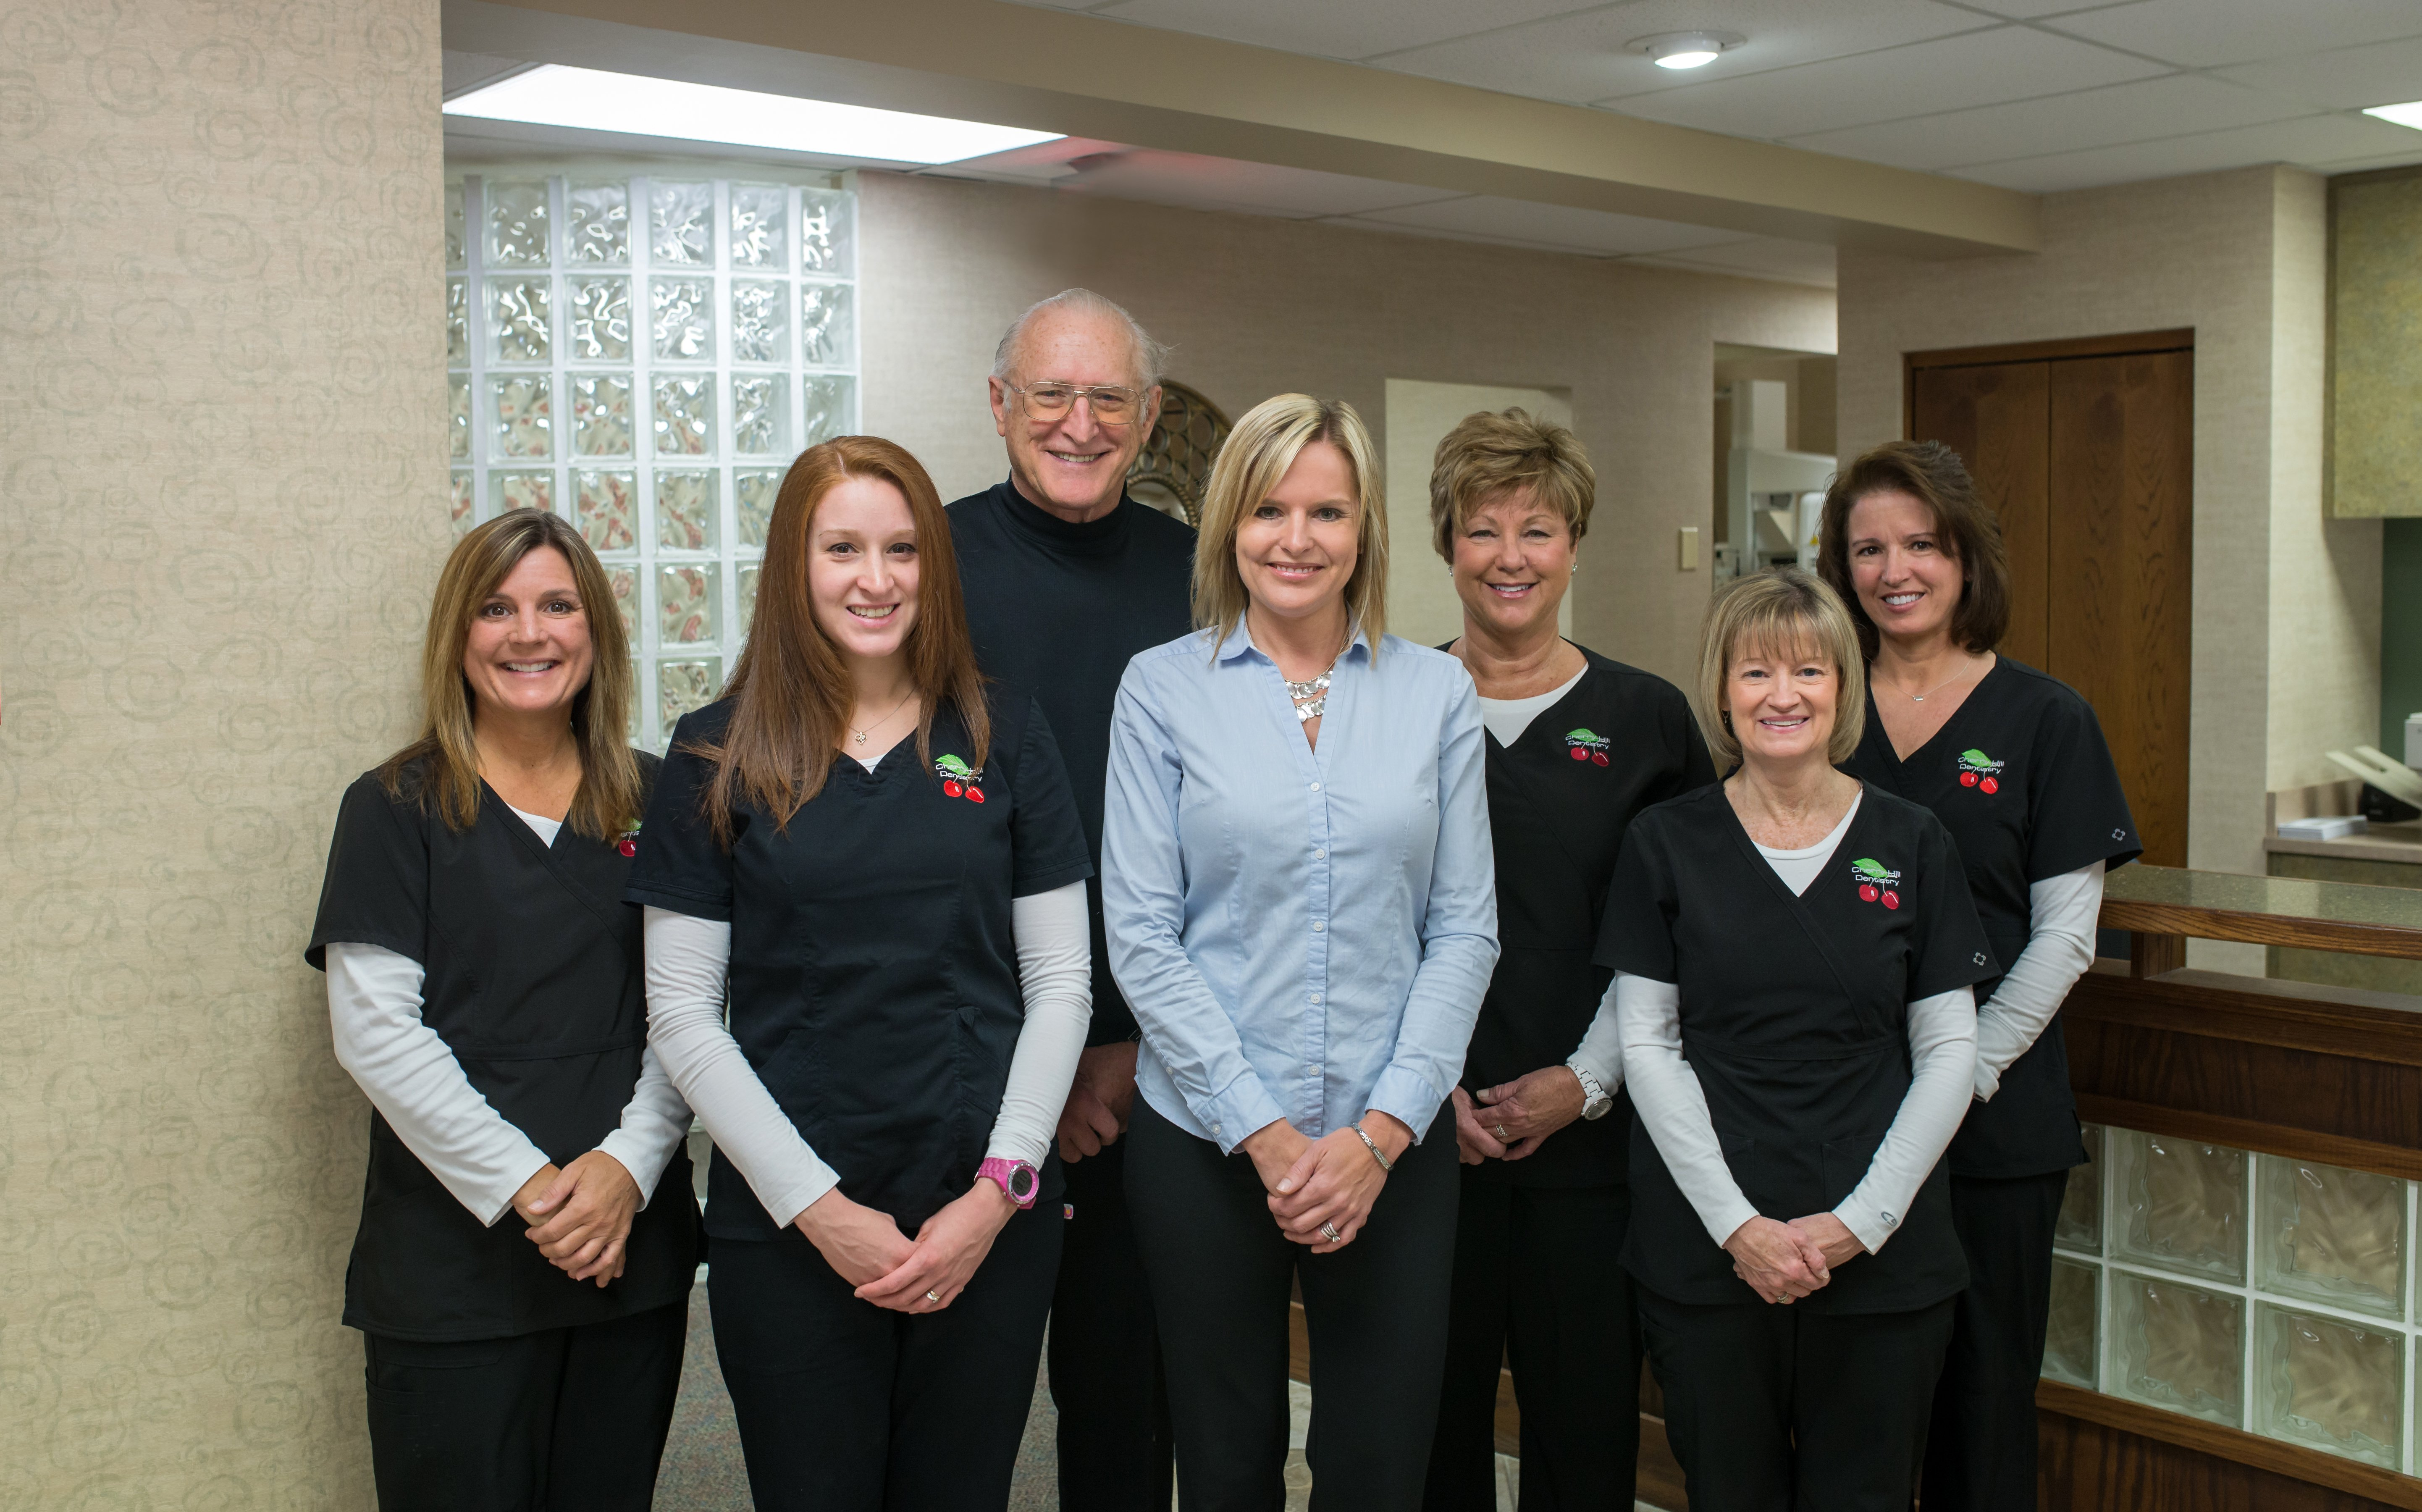 Tooth restoration services with CEREC in Lincoln, NE